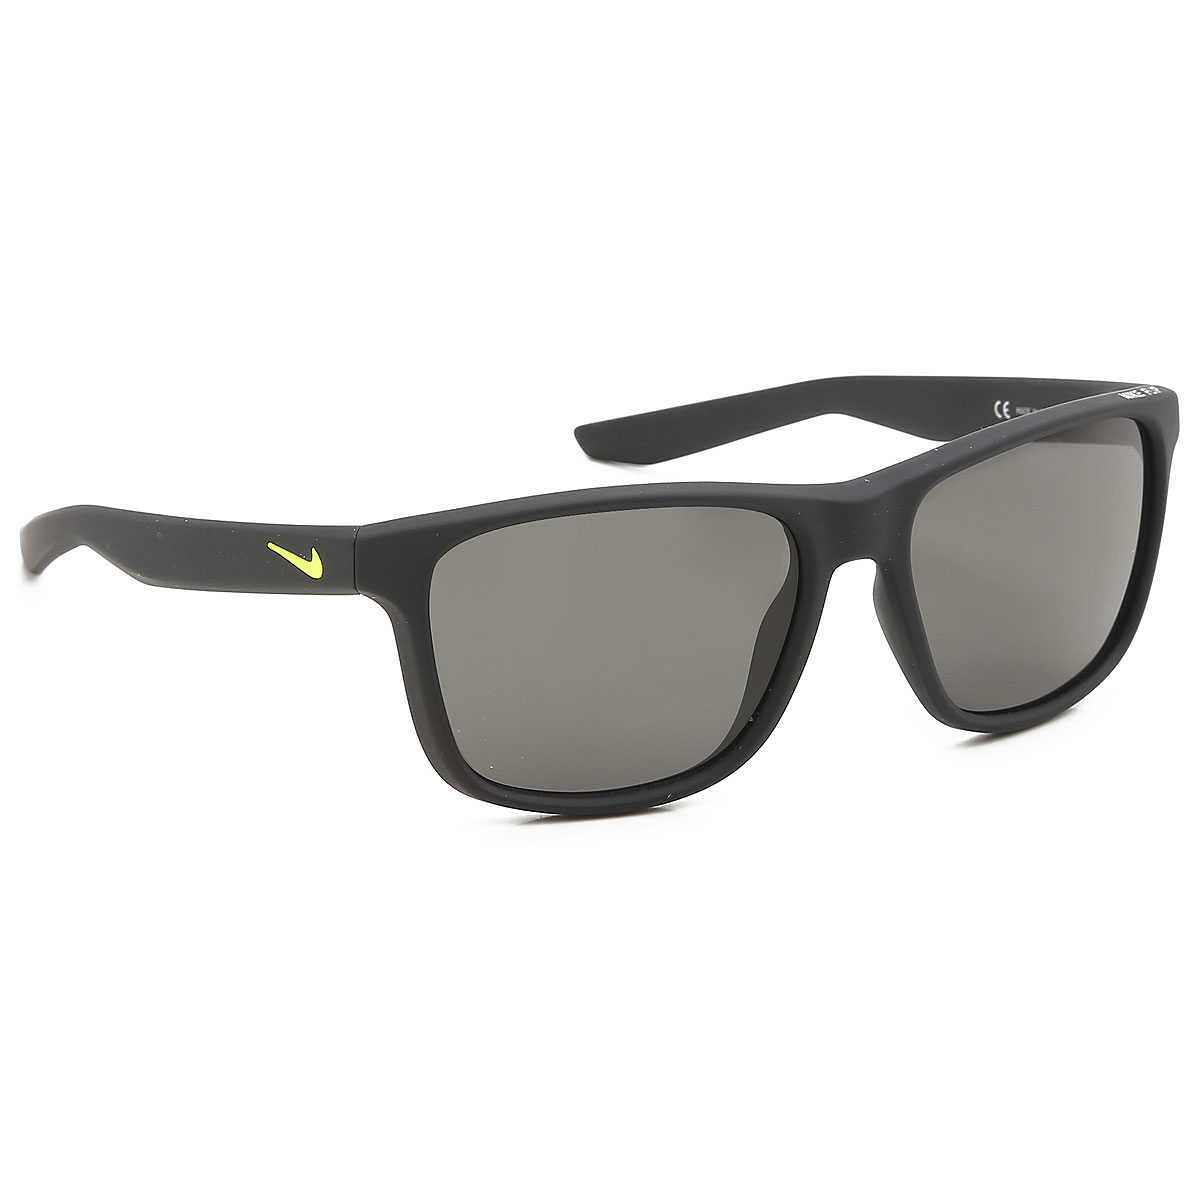 Nike Kids Sunglasses for Boys Matte Black UK - GOOFASH - Mens SUNGLASSES